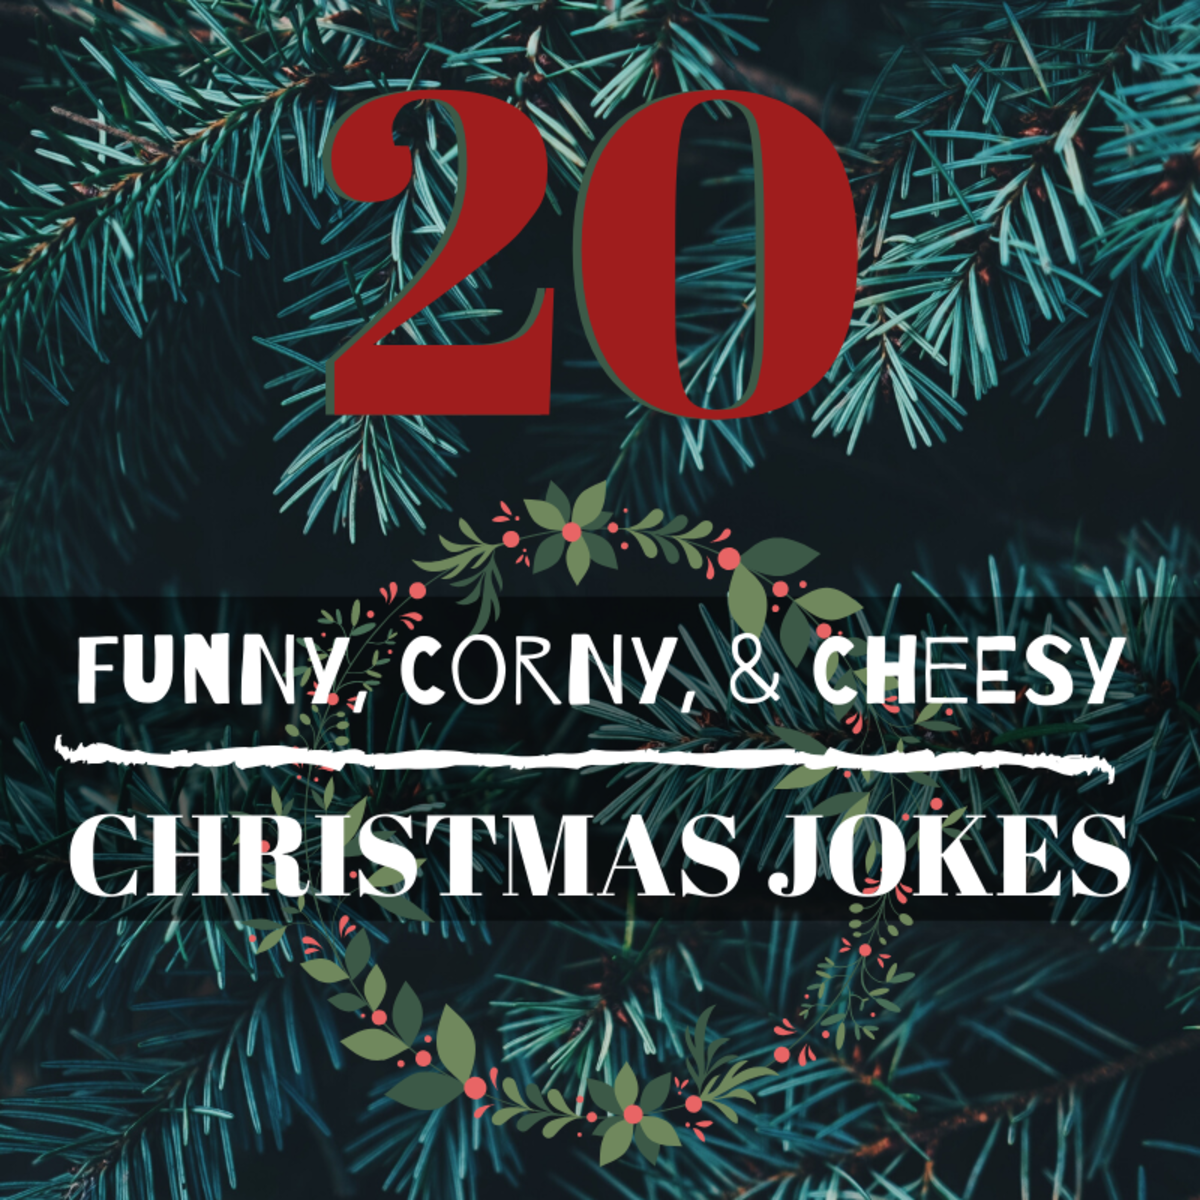 20 Funny, Corny, and Cheesy Christmas Jokes